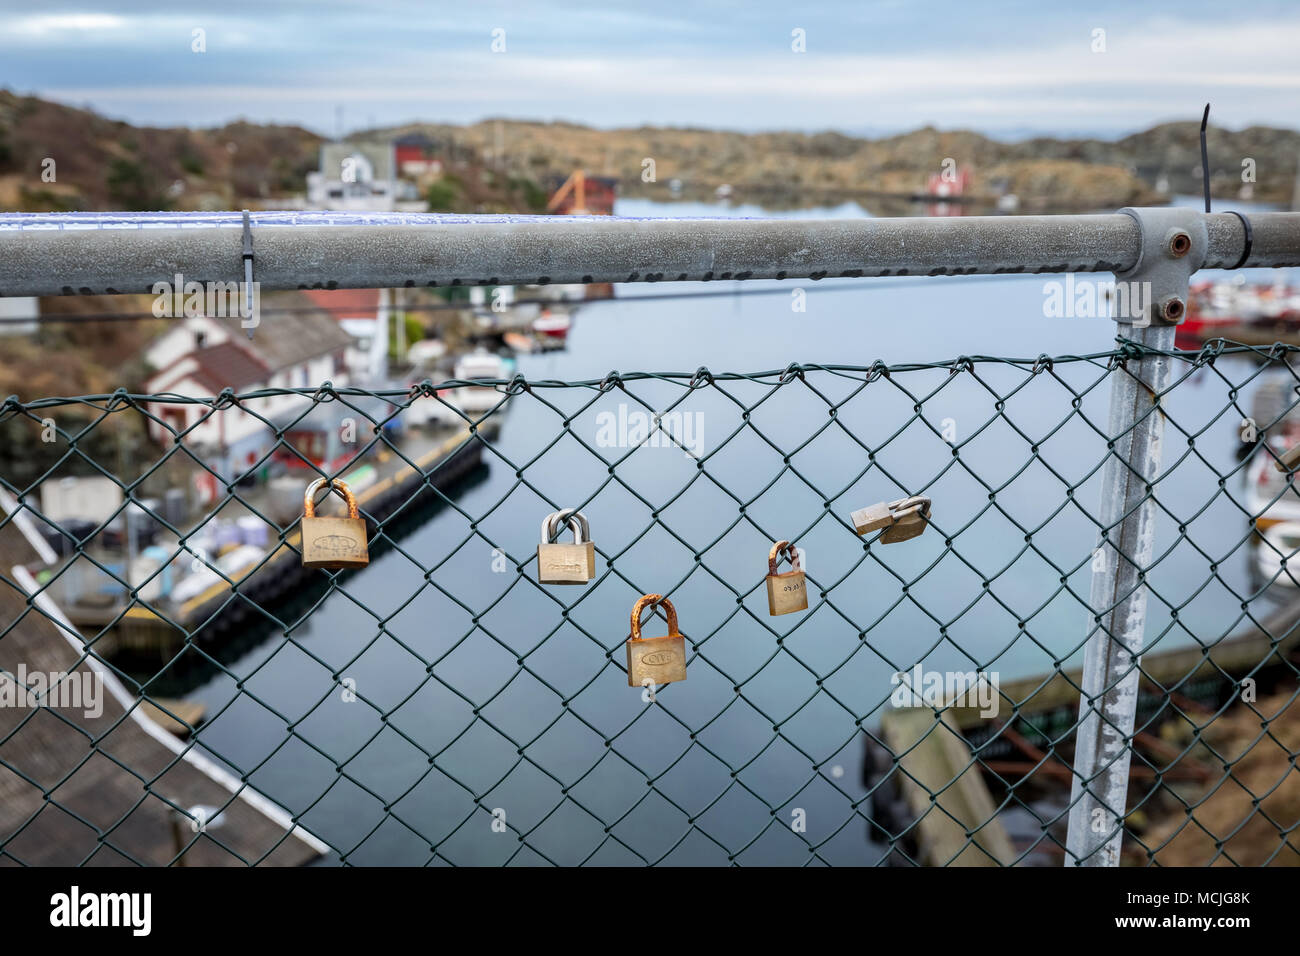 Mesh Fencing Stock Photos & Mesh Fencing Stock Images - Alamy